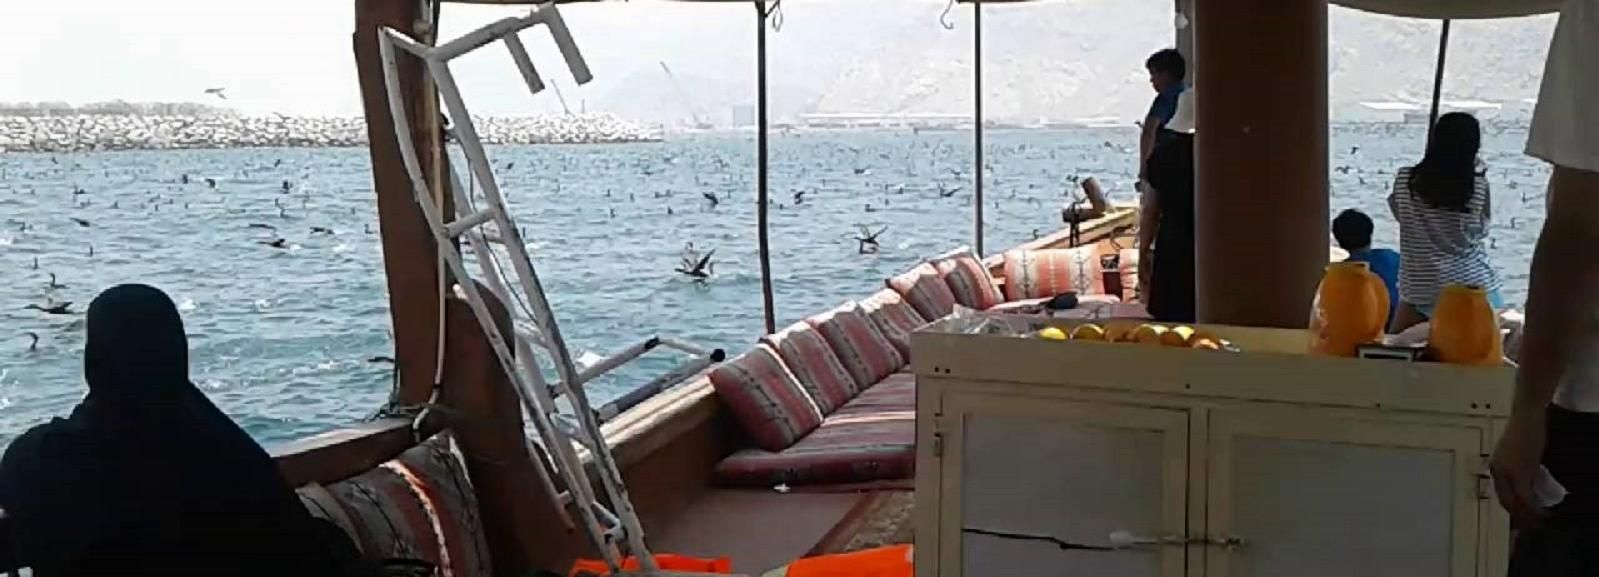 Khasab: Outdoor Camping with Dhow Cruise Tour